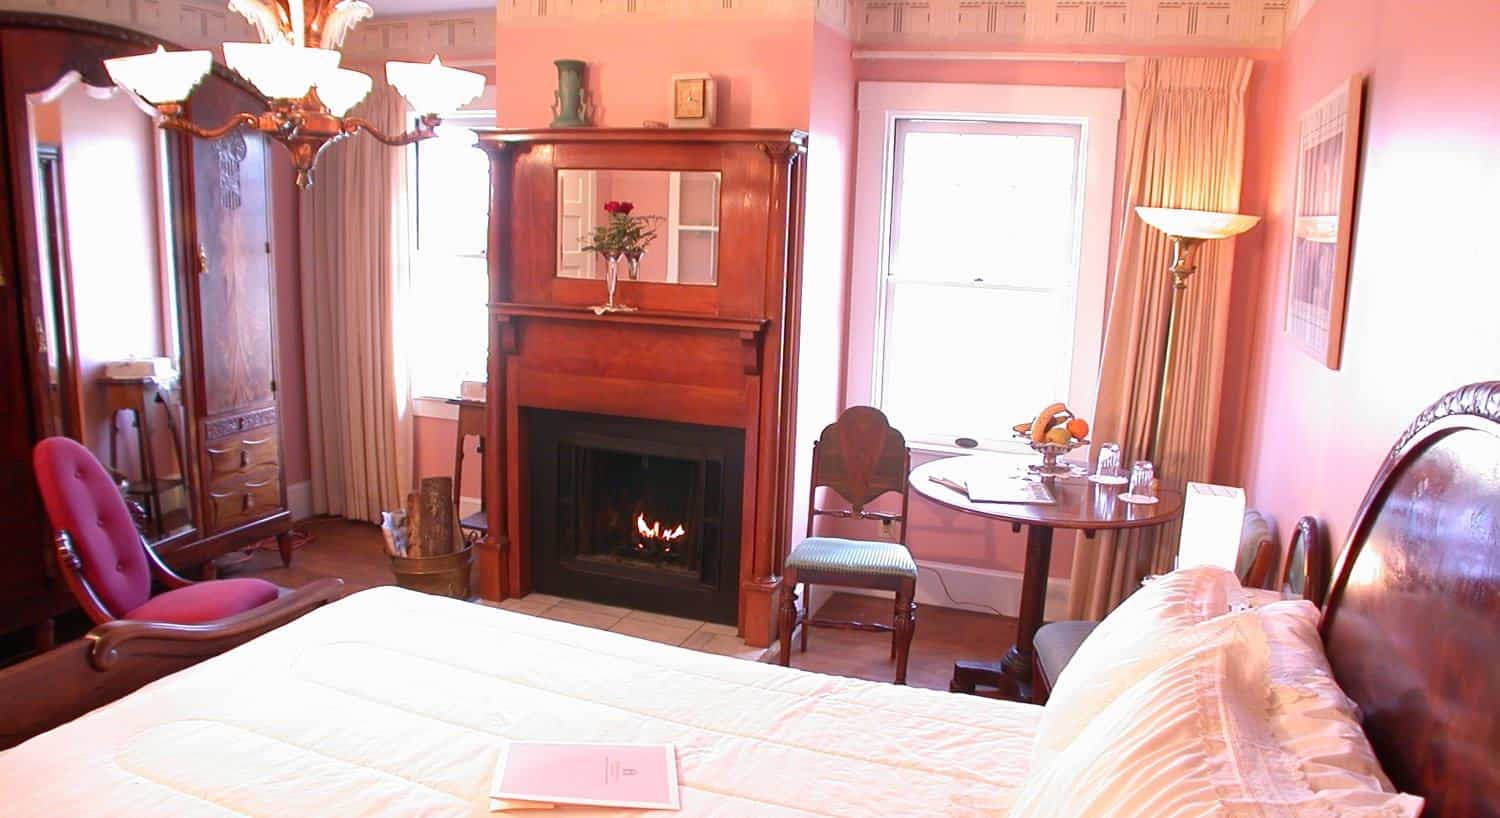 Art Deco guest room with pink walls, two windows flanking a fireplace, armoire, several chairs and bed with white bedding